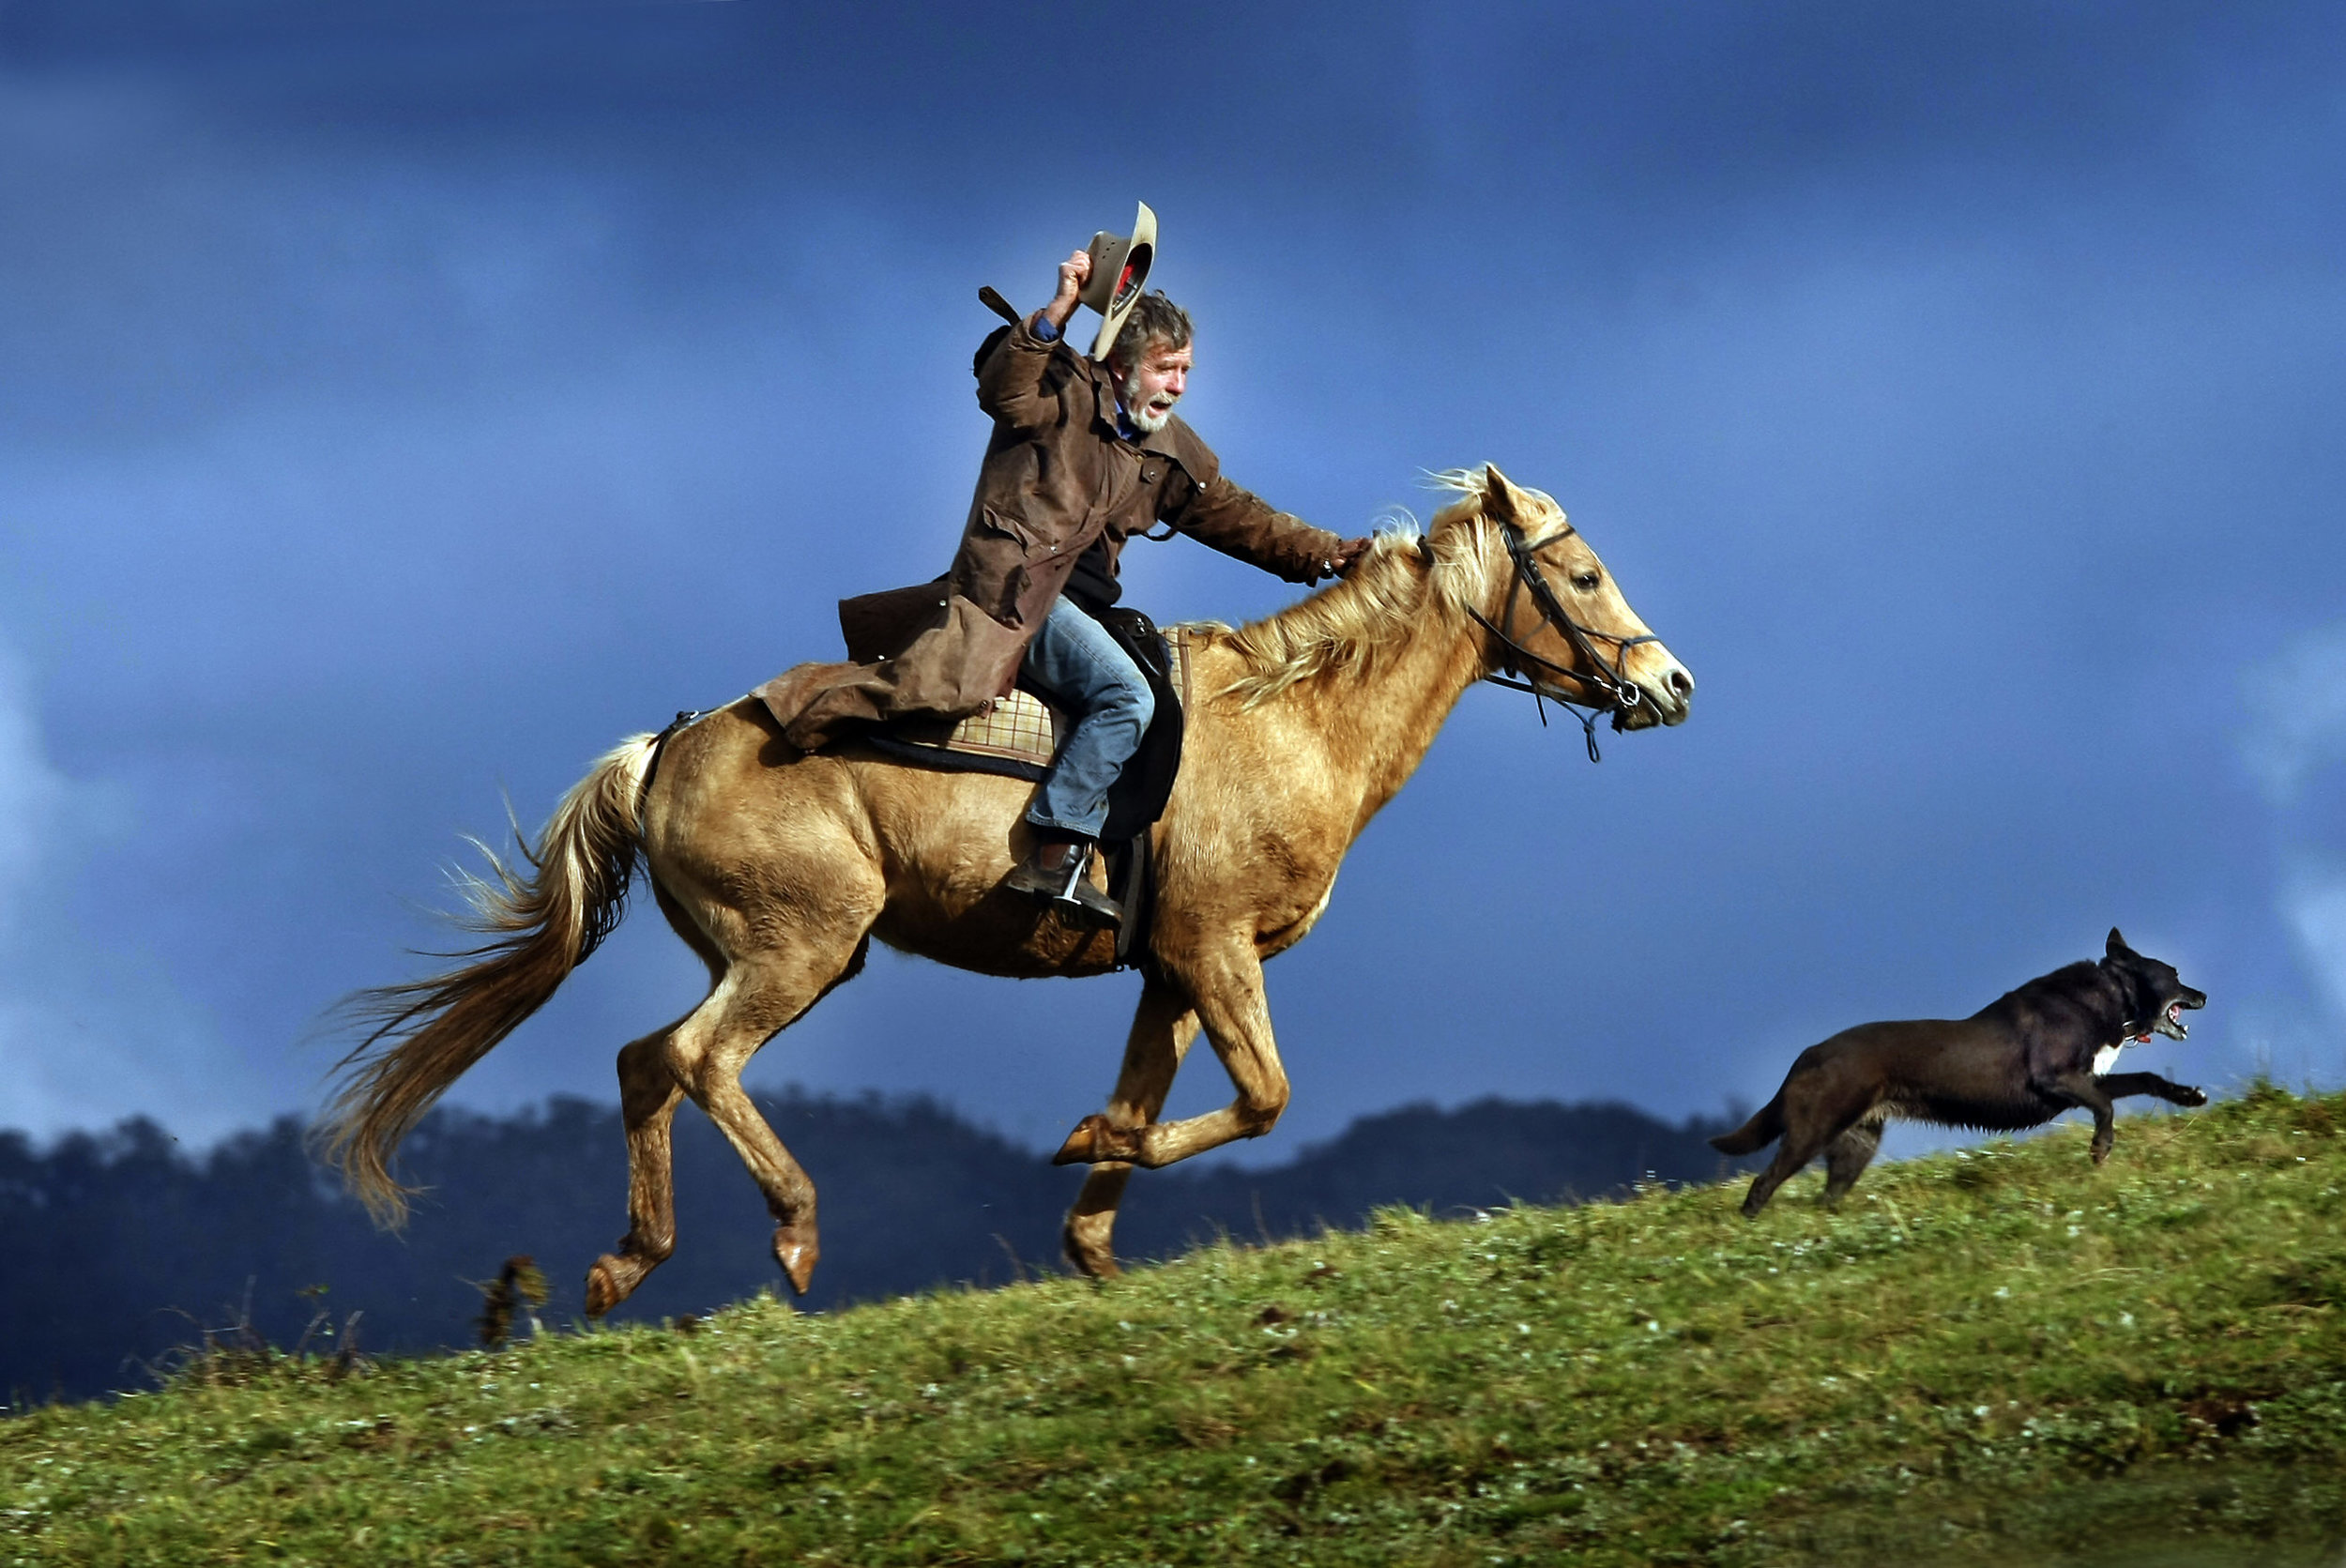 CHP_Export_9297251_HS25  Merrijig resident Chris Dunlop musters his horses in the high country n.jpg